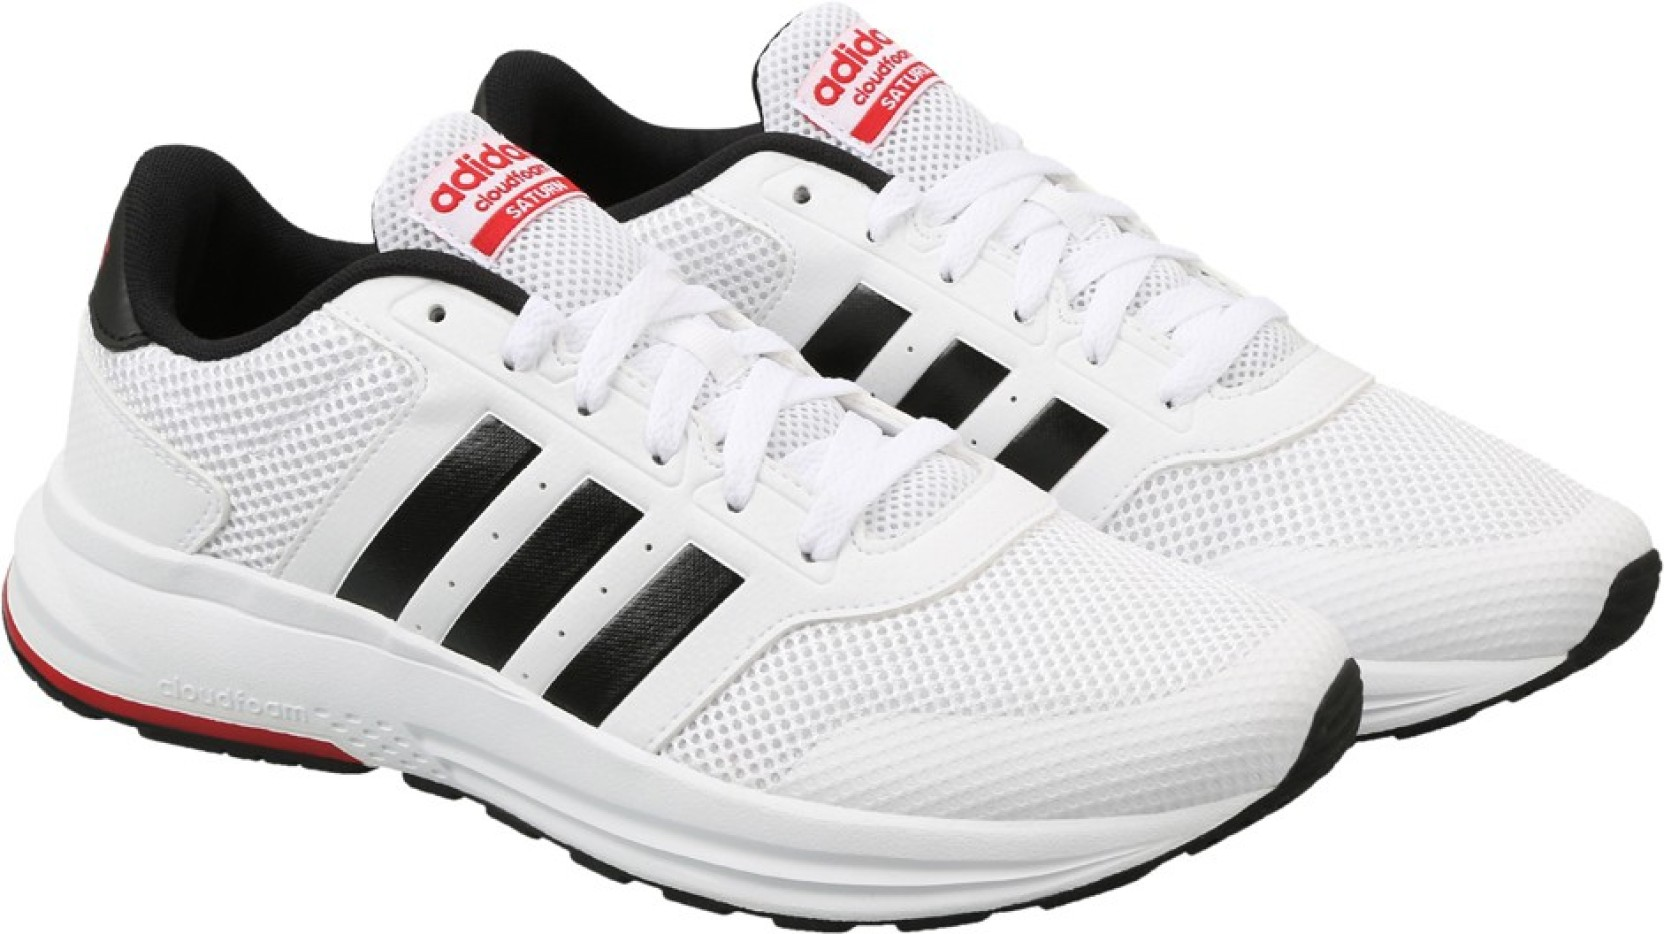 buy online ce36e 15b08 ADIDAS NEO CLOUDFOAM SATURN Sneakers For Men (White, Black)